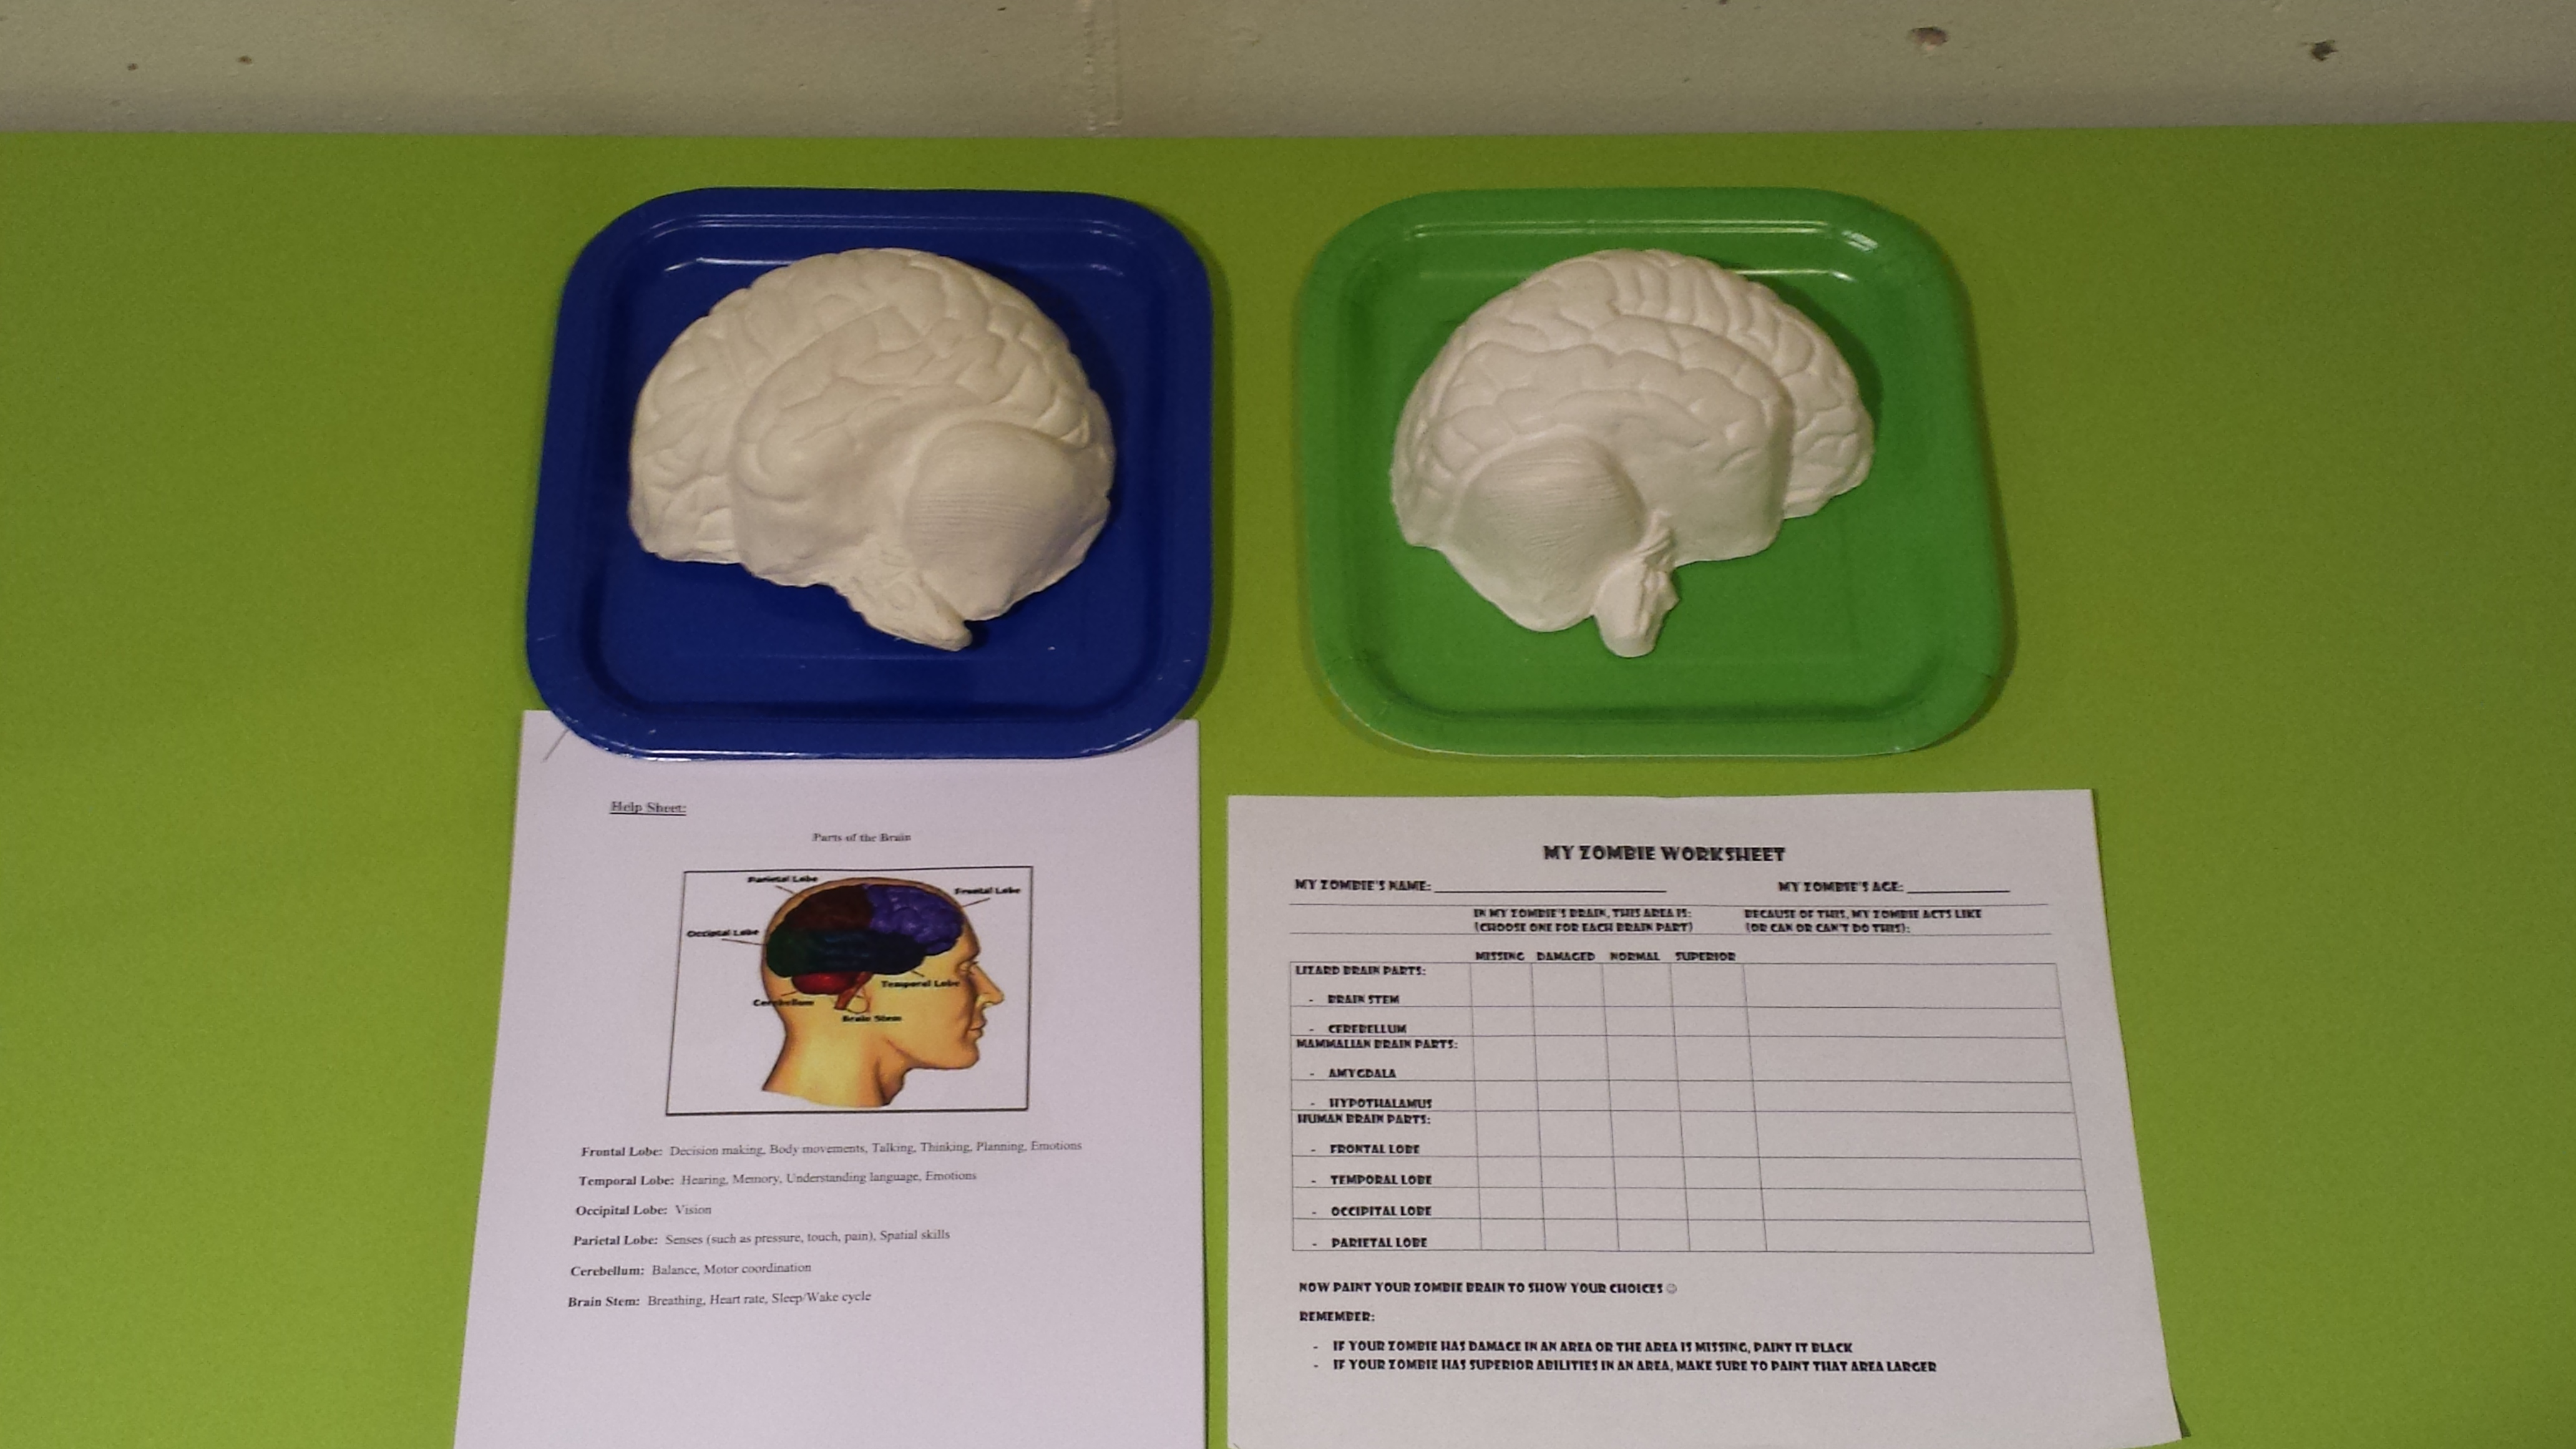 Society for the teaching of psychology exploring the human brain i have found that one of the most boredom inducing topics to cover when teaching introductory psychology or child development is the information on ccuart Gallery